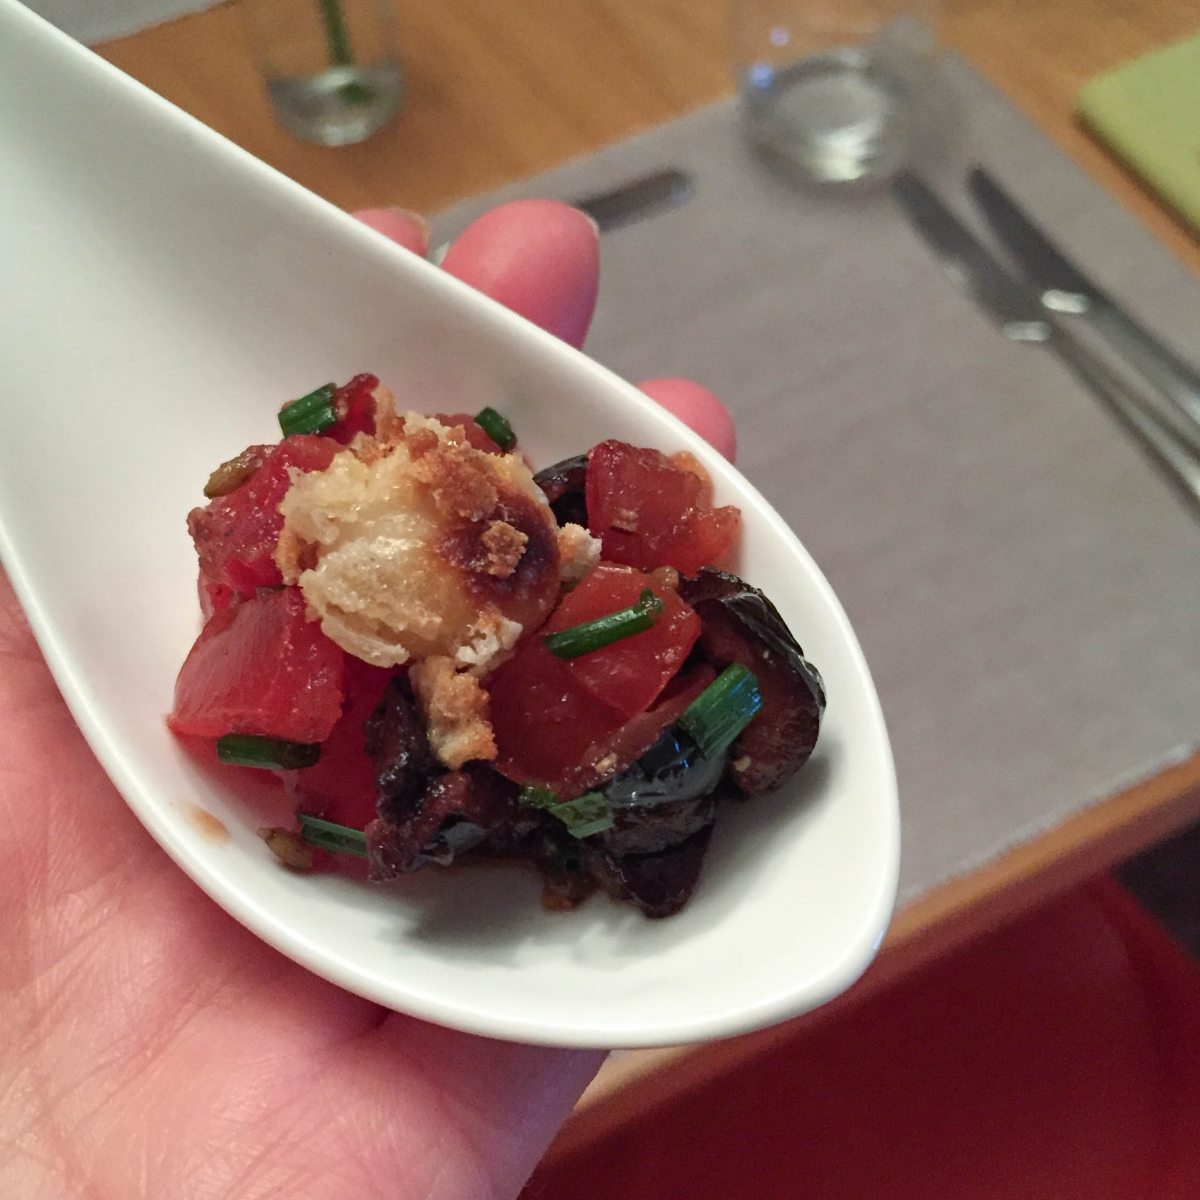 A photograph of the first canape: deep fried macadamia nuts in a tomato and olive salsa, served on a white ceramic spoon